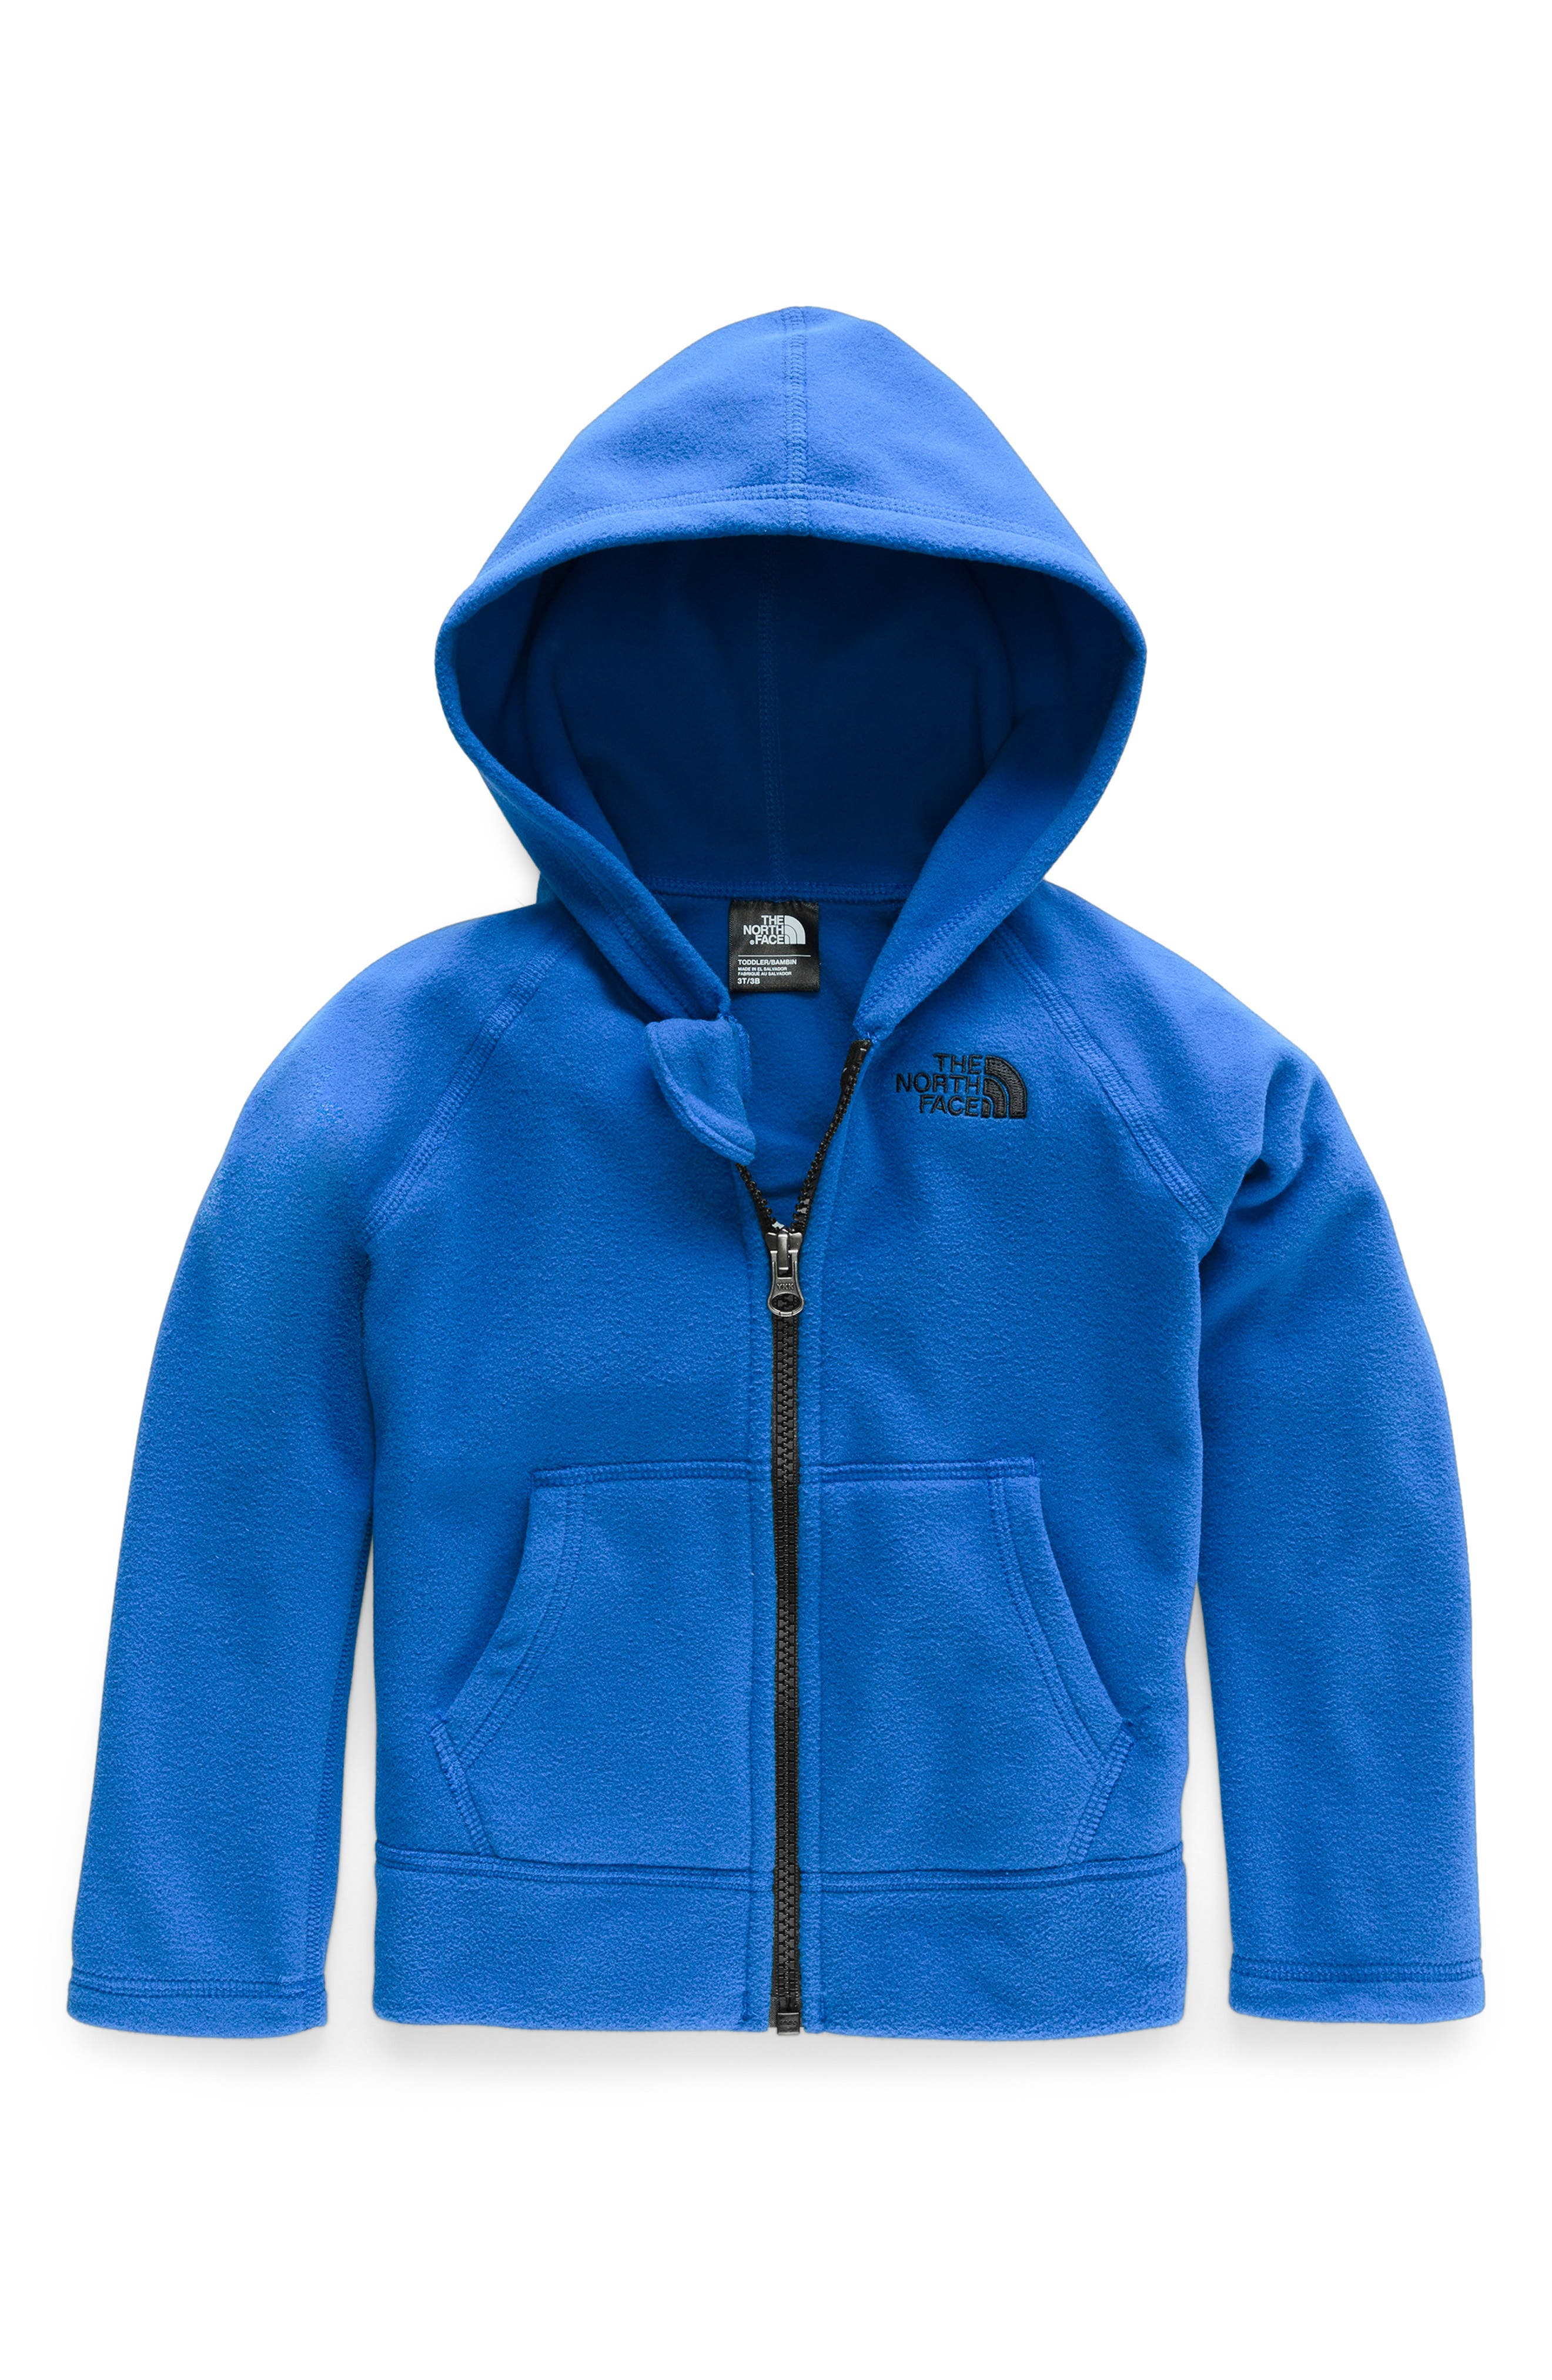 Toddler Boys The North Face Glacier Zip Hoodie Size 3T  Blue